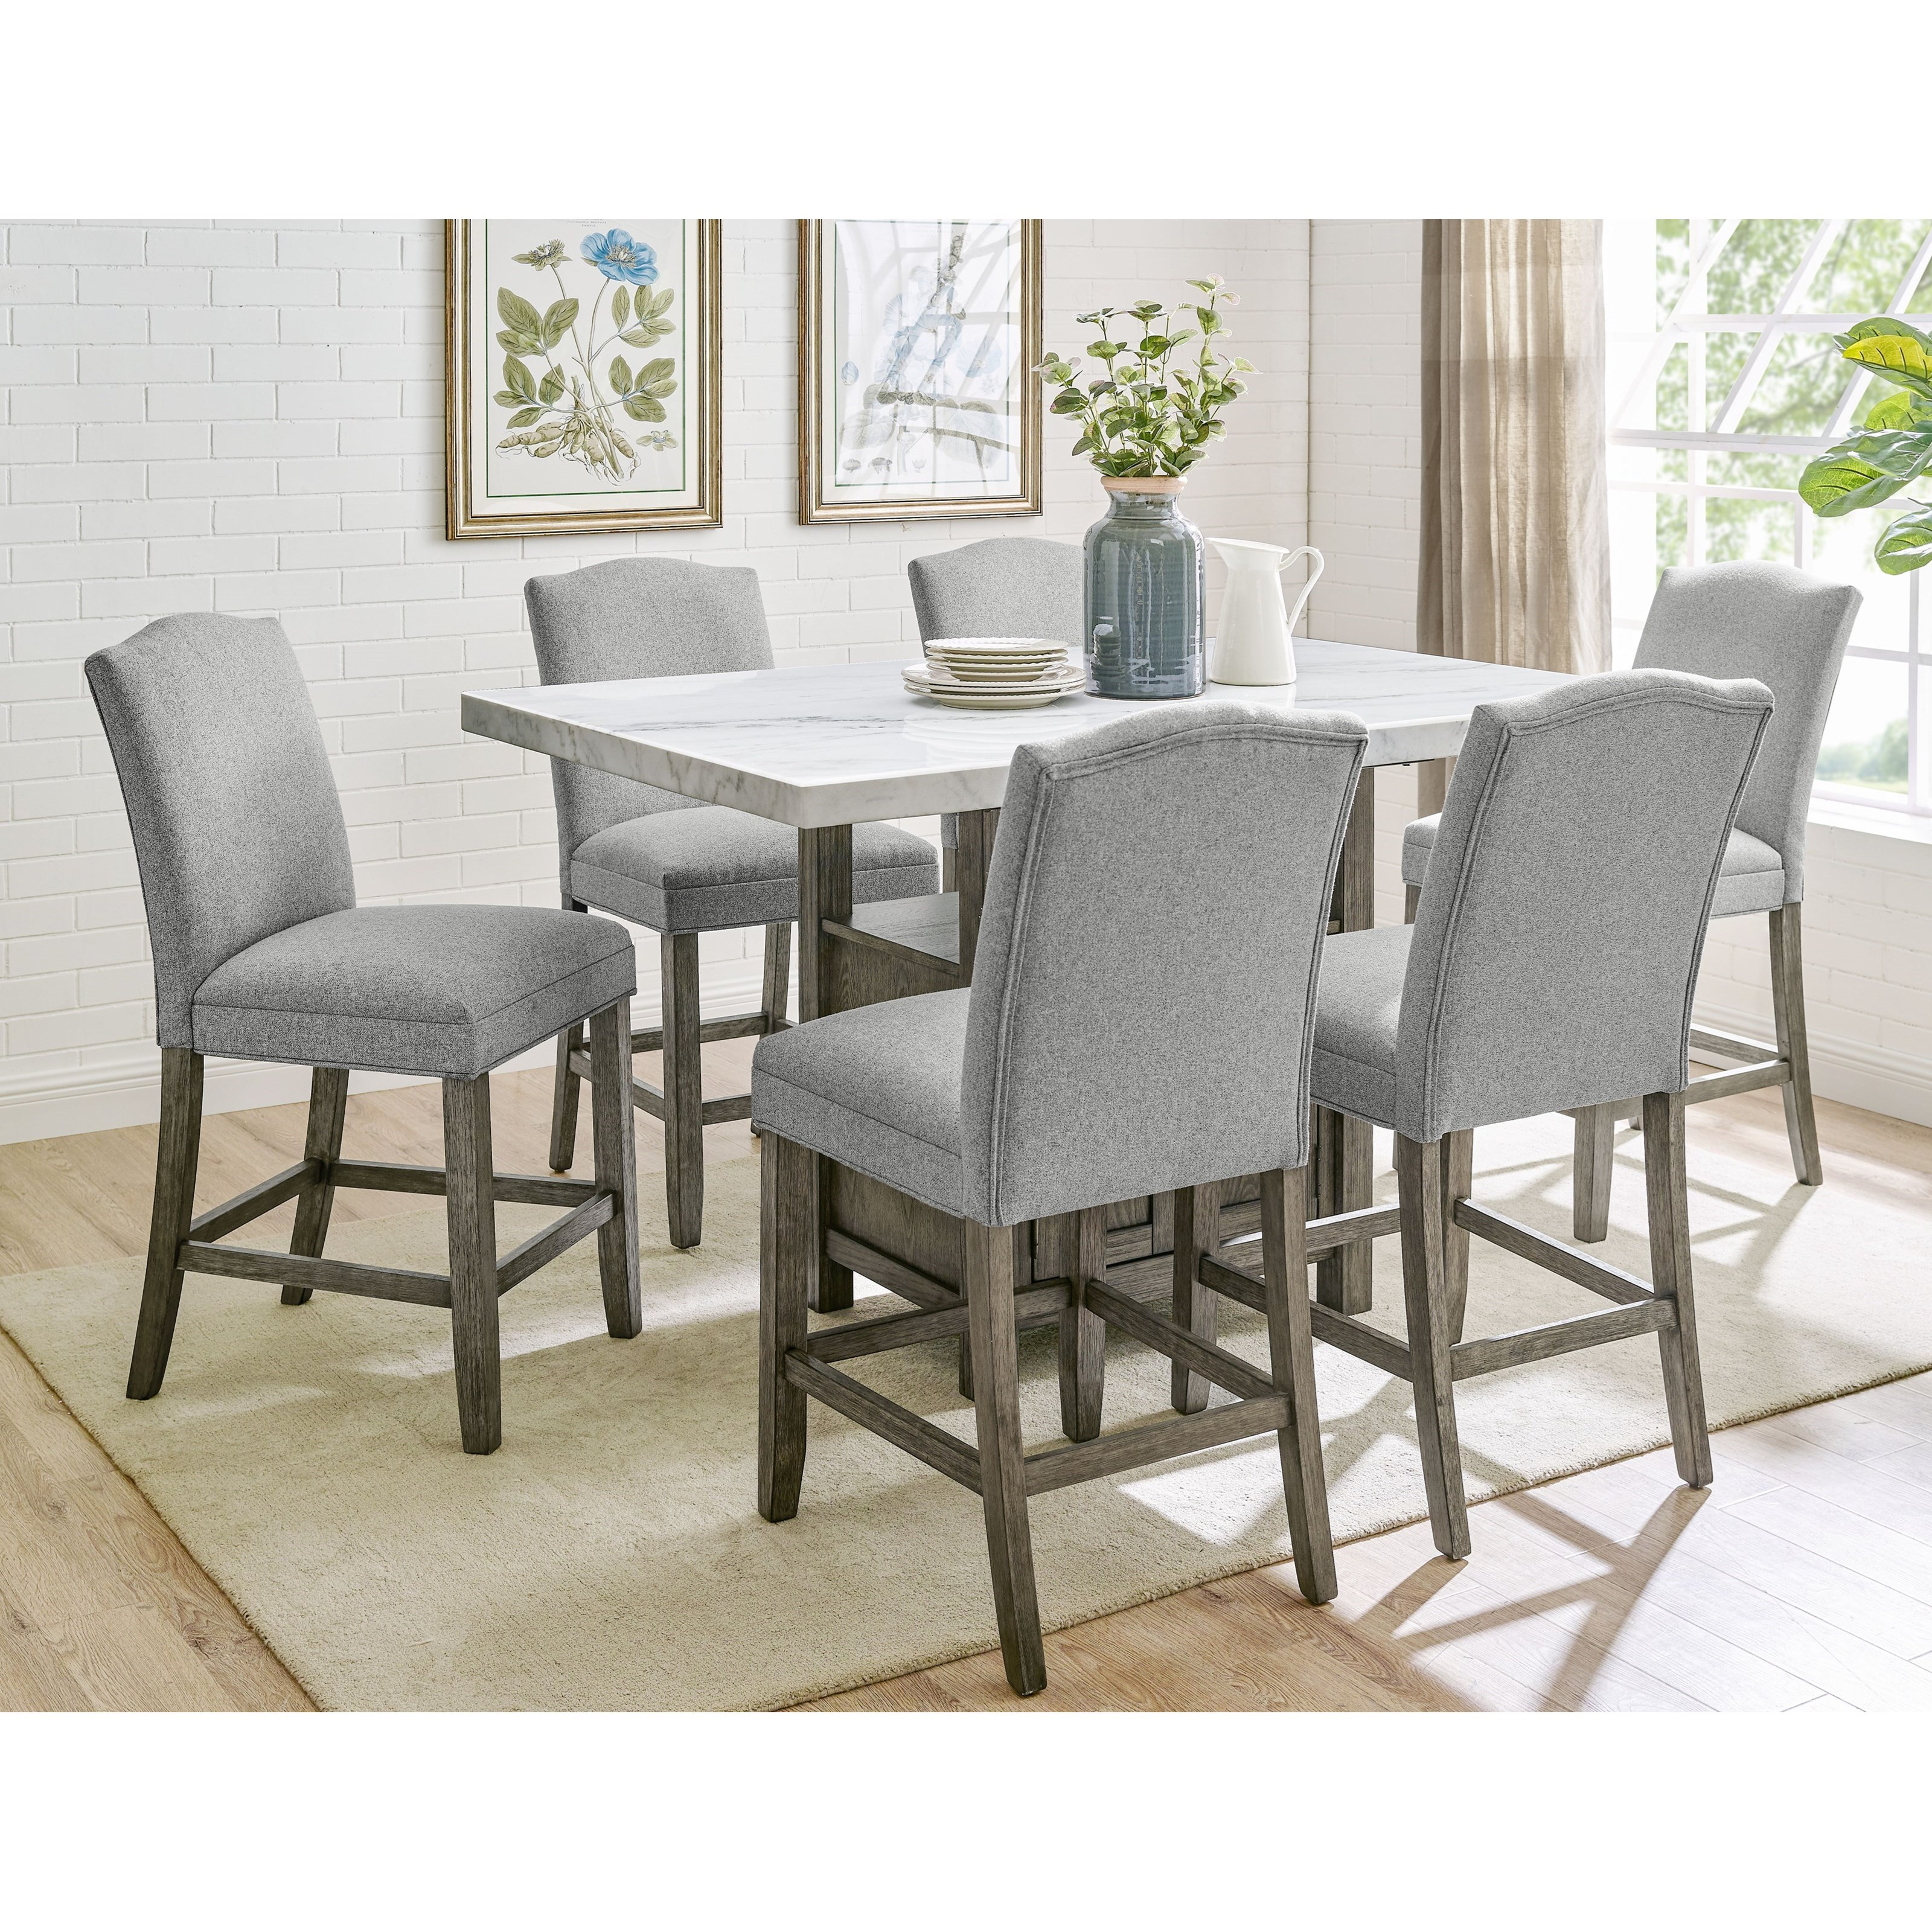 Grayson 7-Piece Counter Height Dining Set by Steve Silver at Walker's Furniture